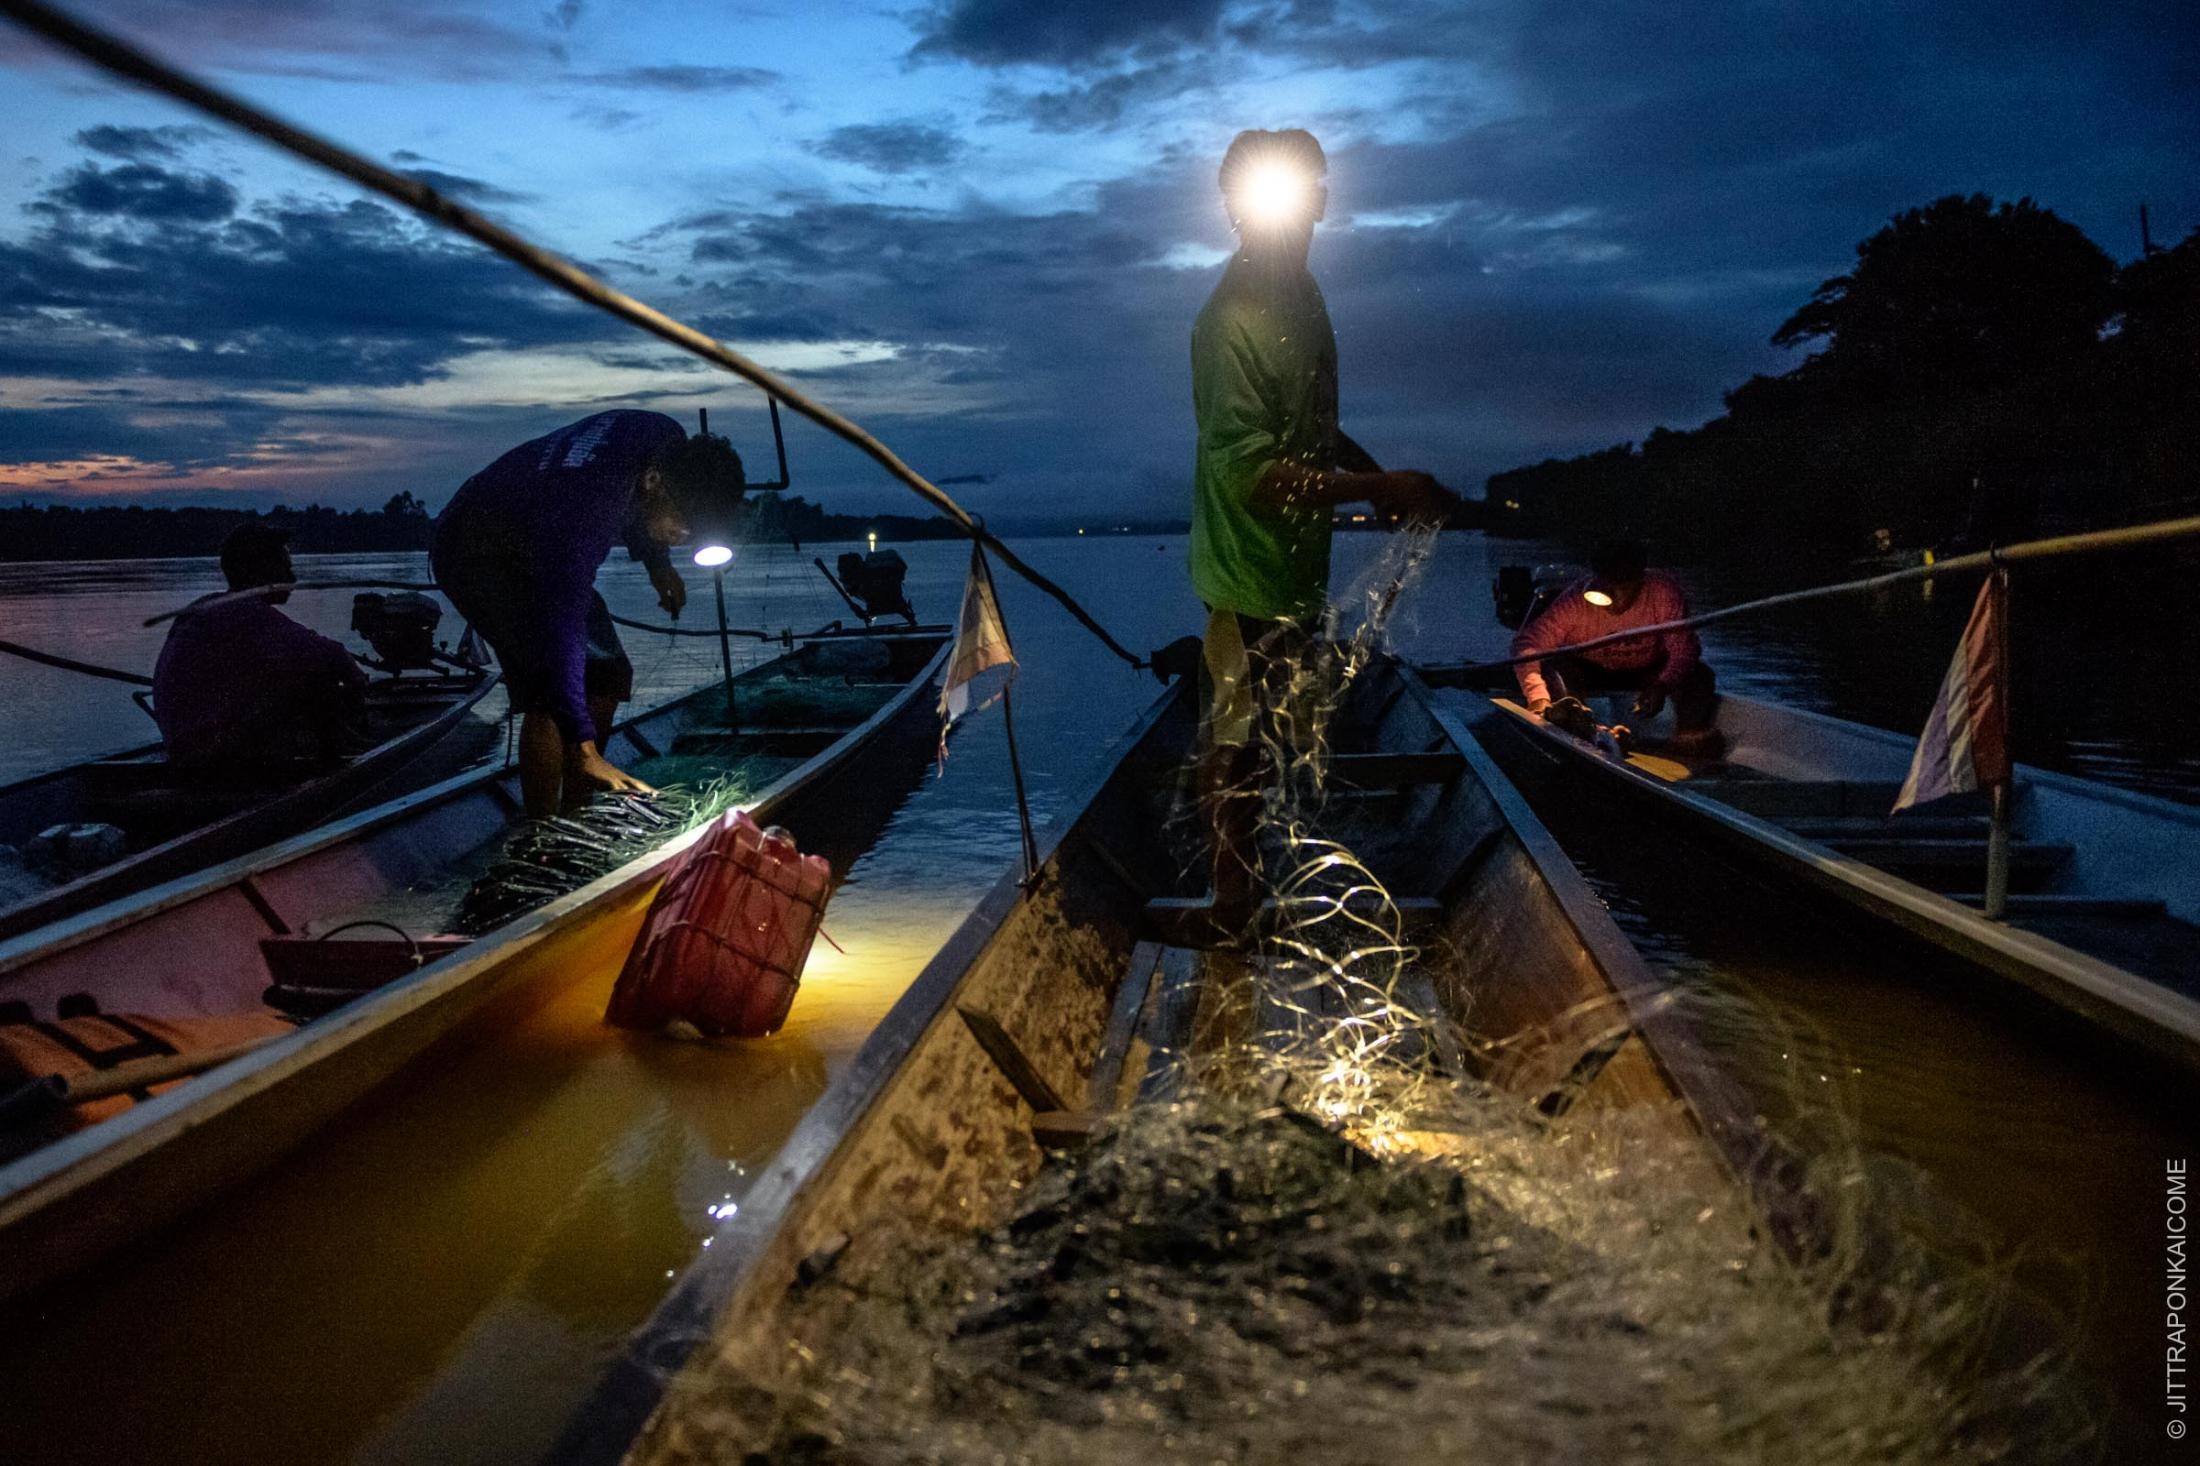 Fishers are preparing their nets in the small harbor, to catch fish at dawn. Chiang Khan, Loei, Thailand – August 2020.